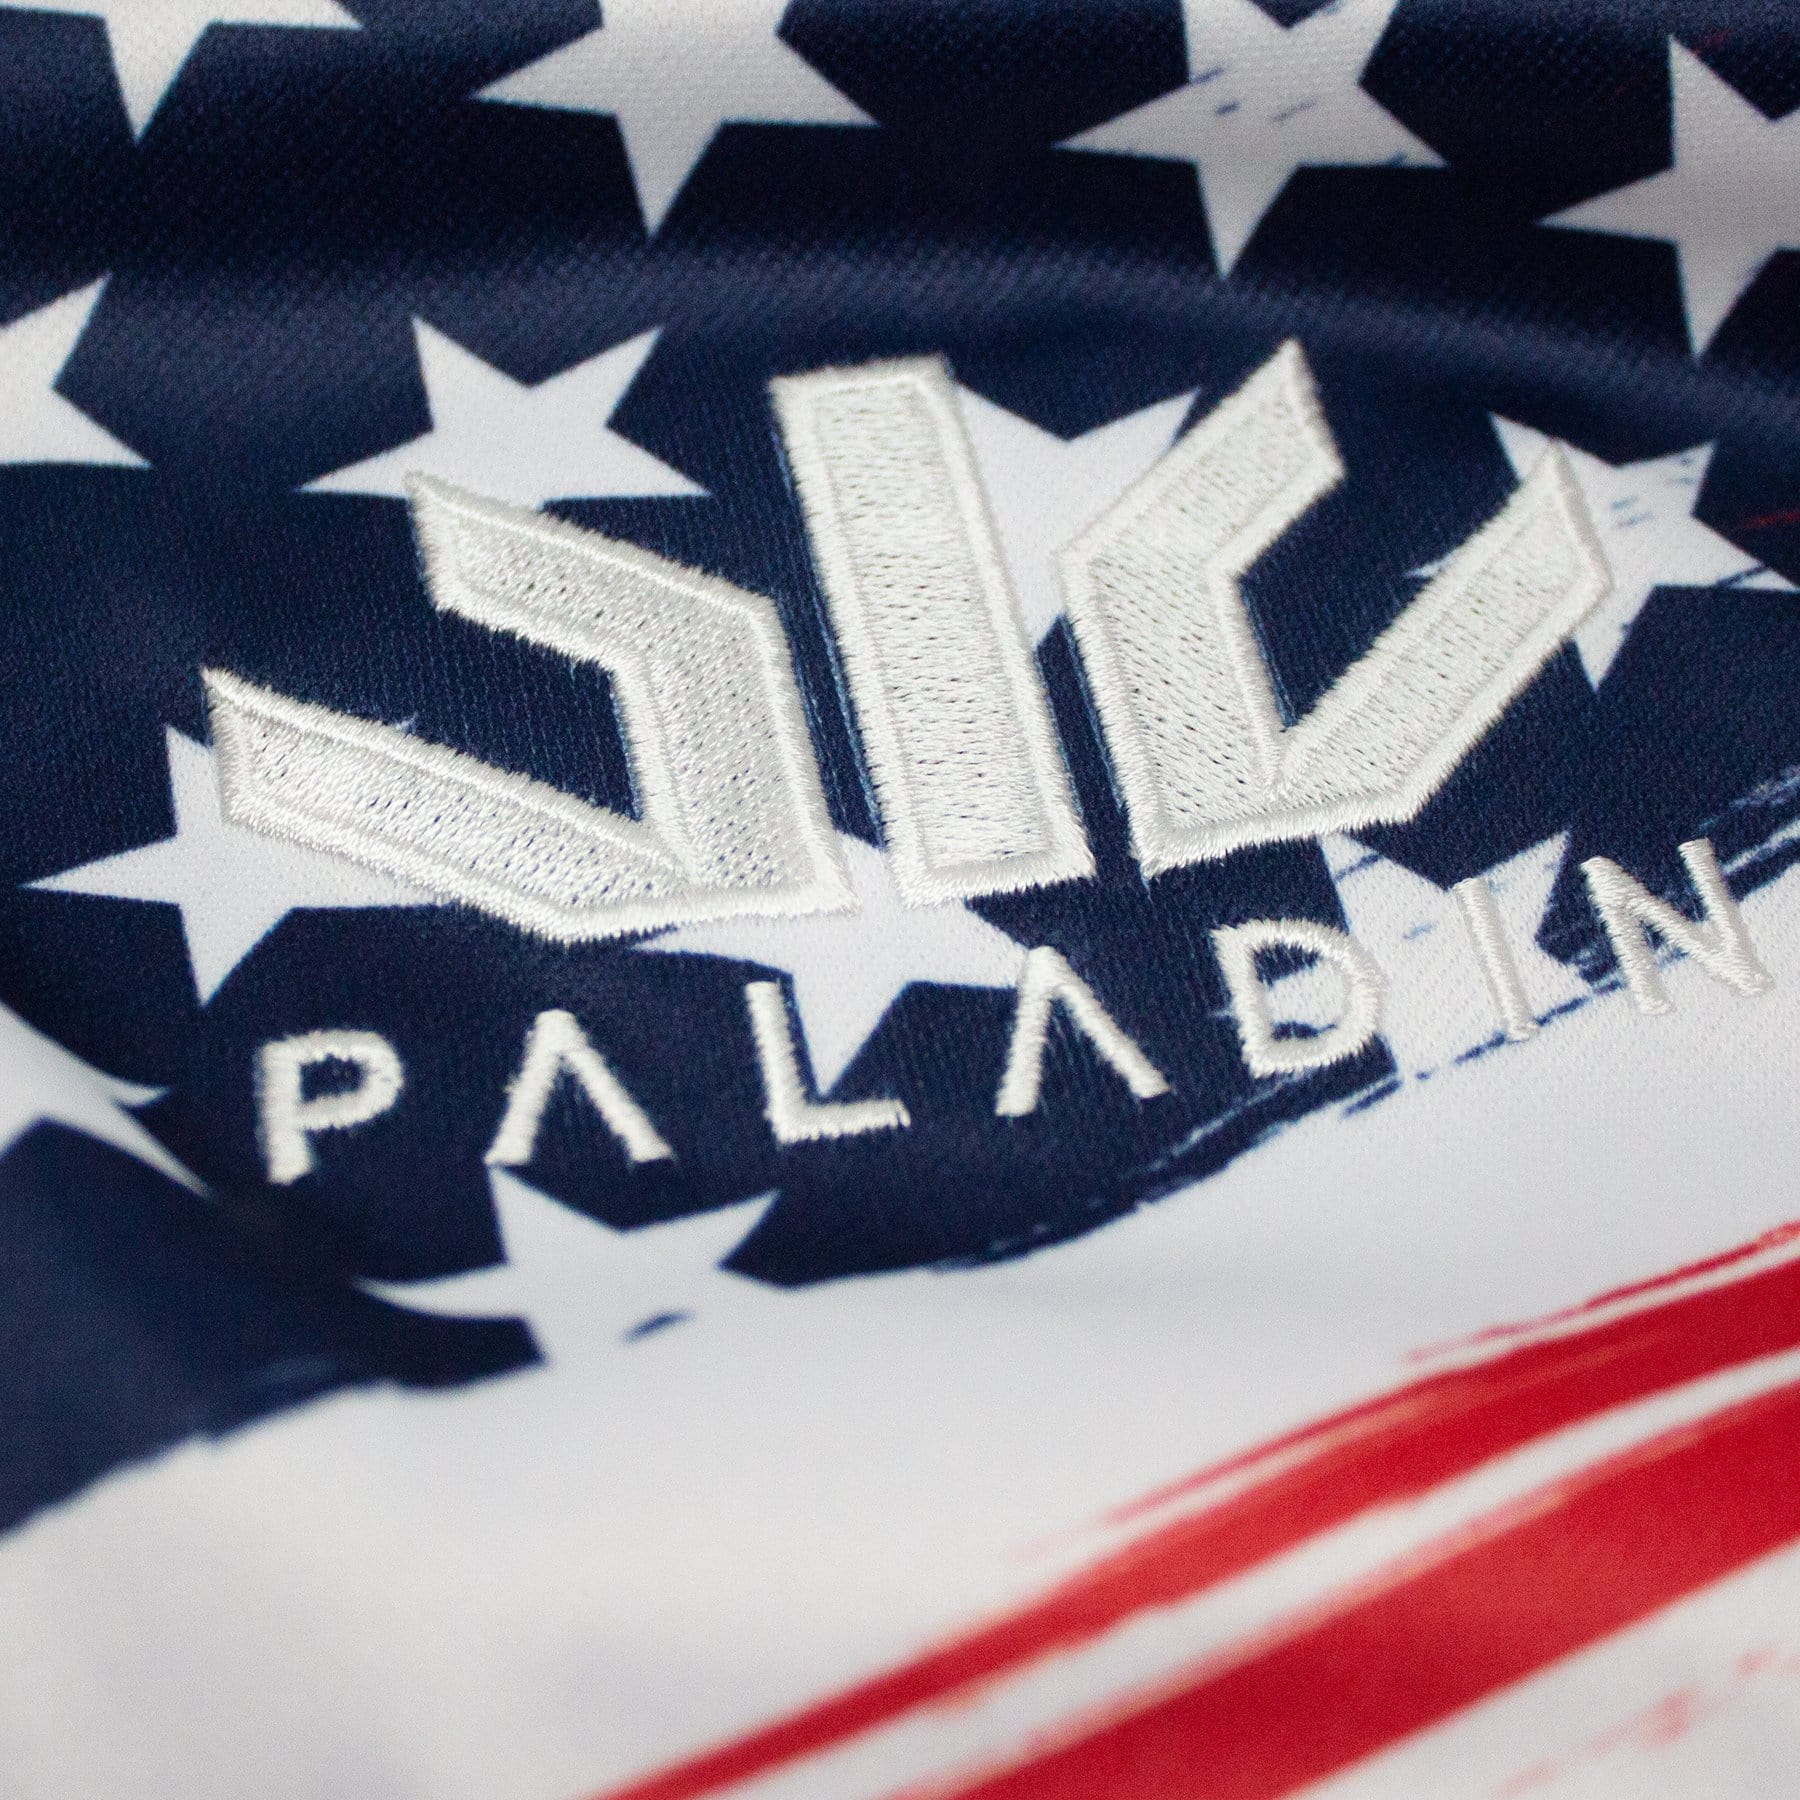 Paladin Old Glory DC 2021 Away Jersey